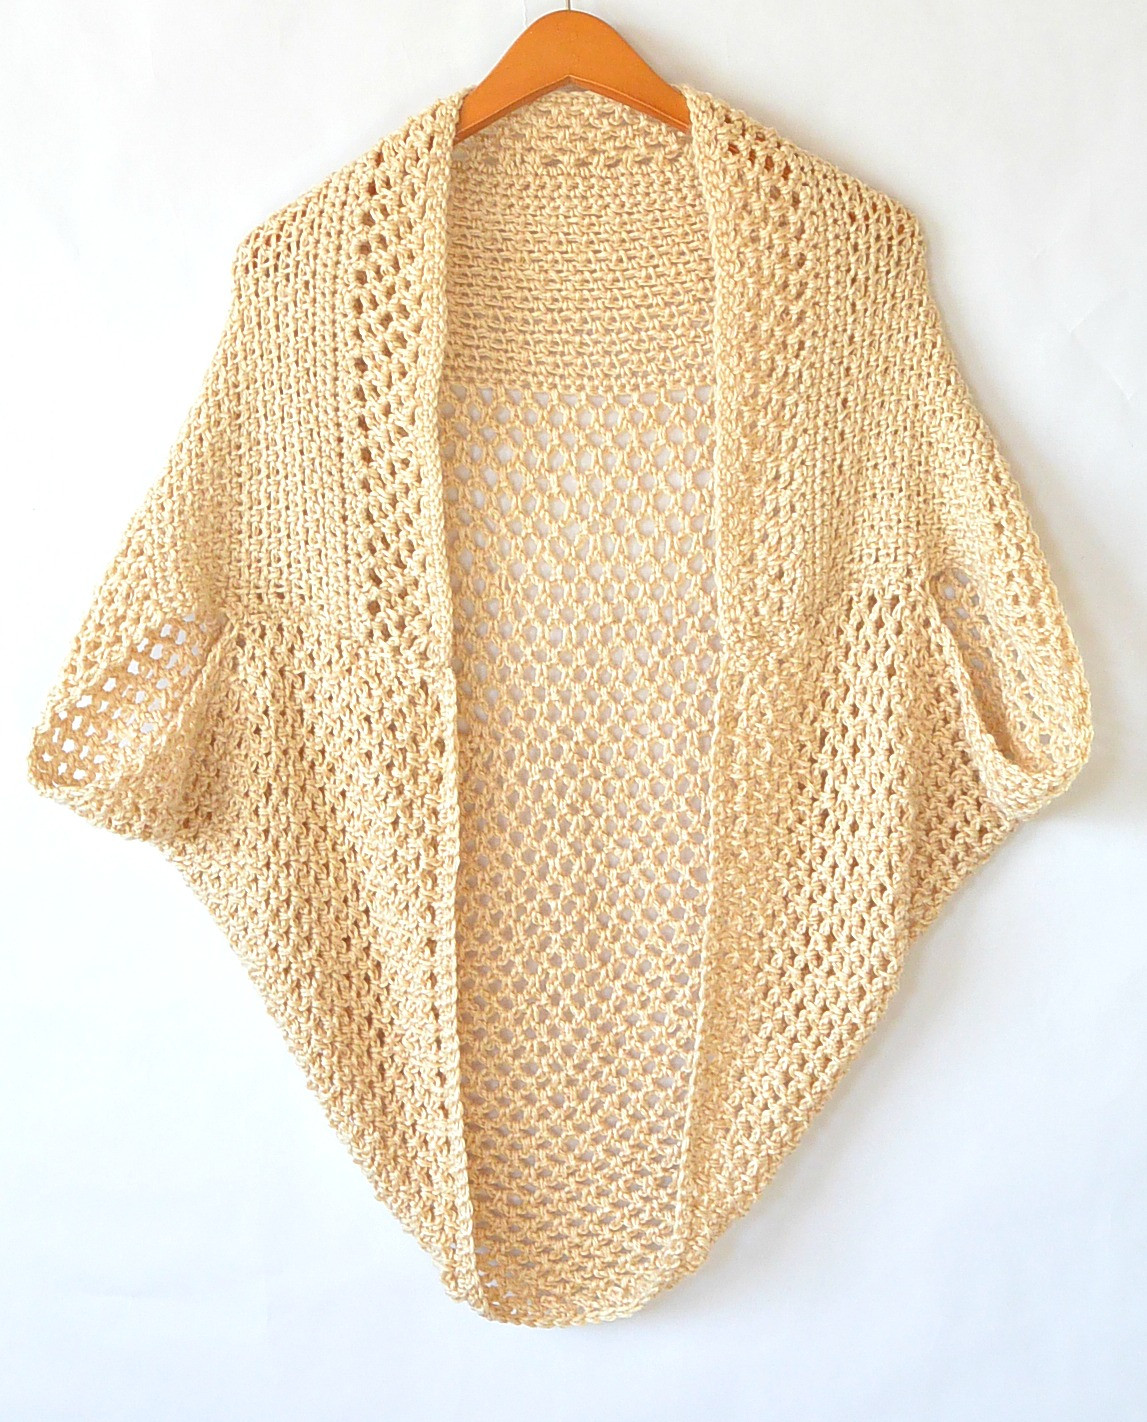 Cardigan Pattern Best Of Mod Mesh Honey Blanket Sweater – Mama In A Stitch Of Superb 46 Images Cardigan Pattern